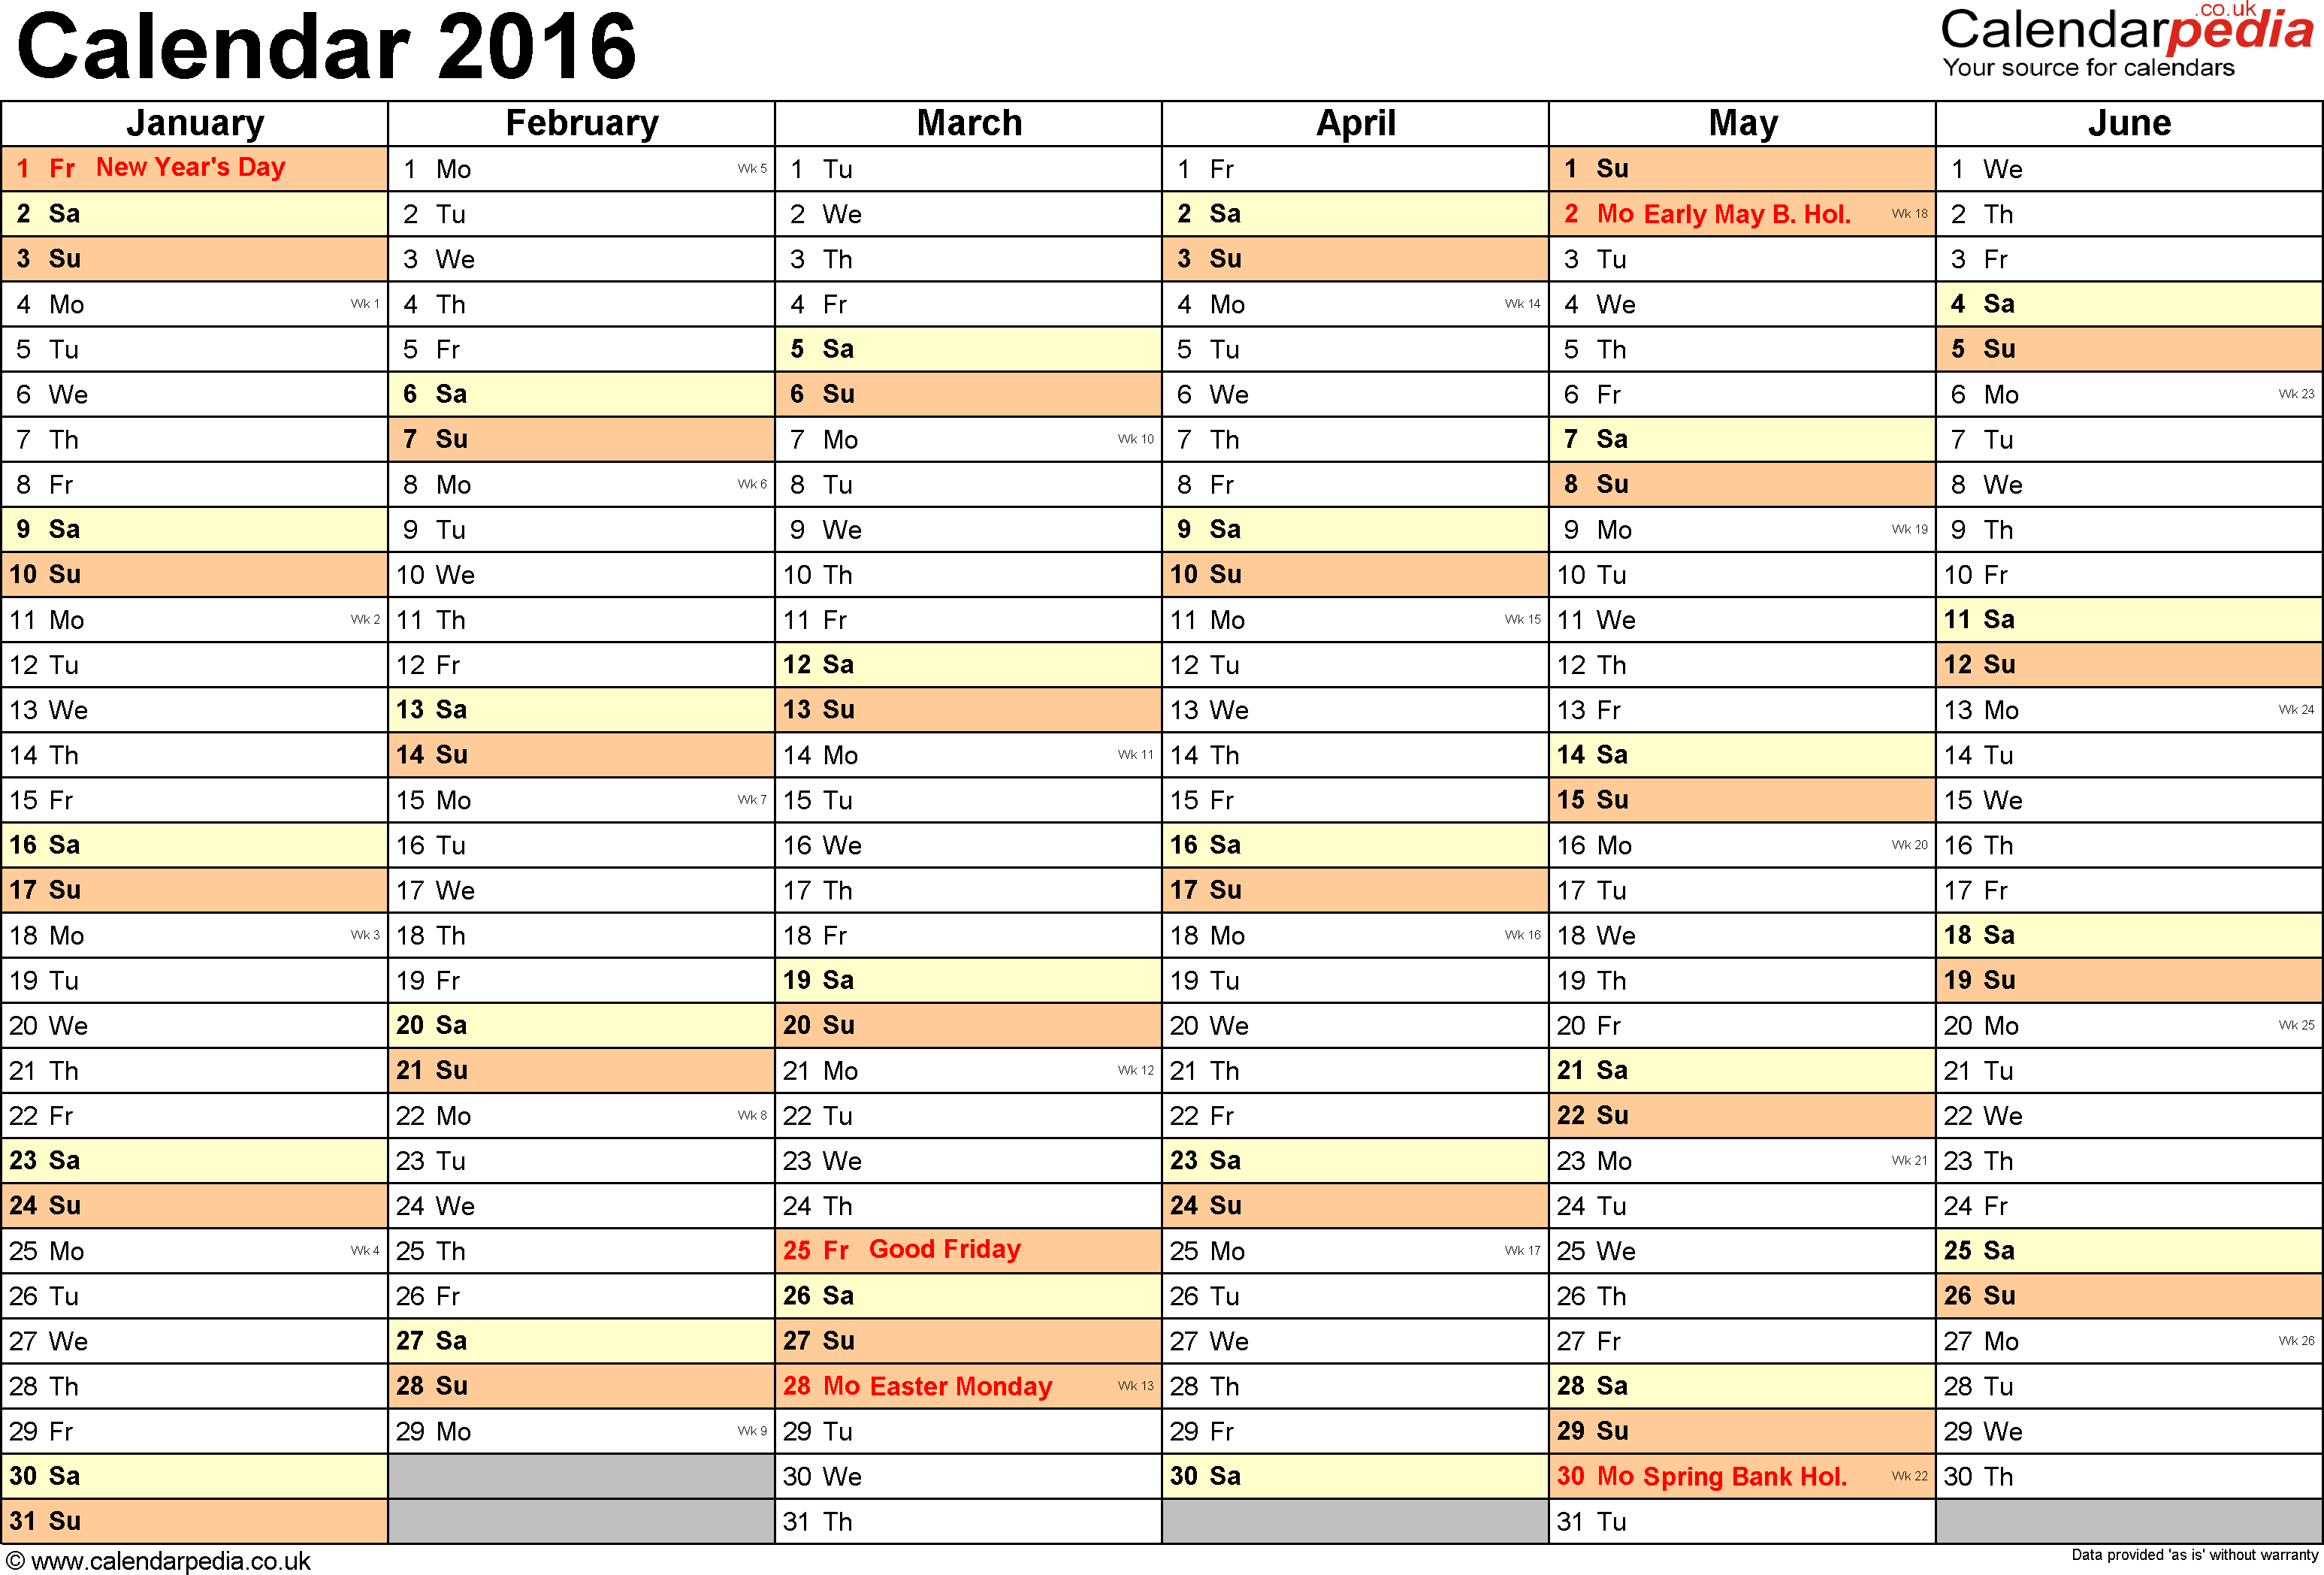 Free Printable 2016 Calendar with Holidays